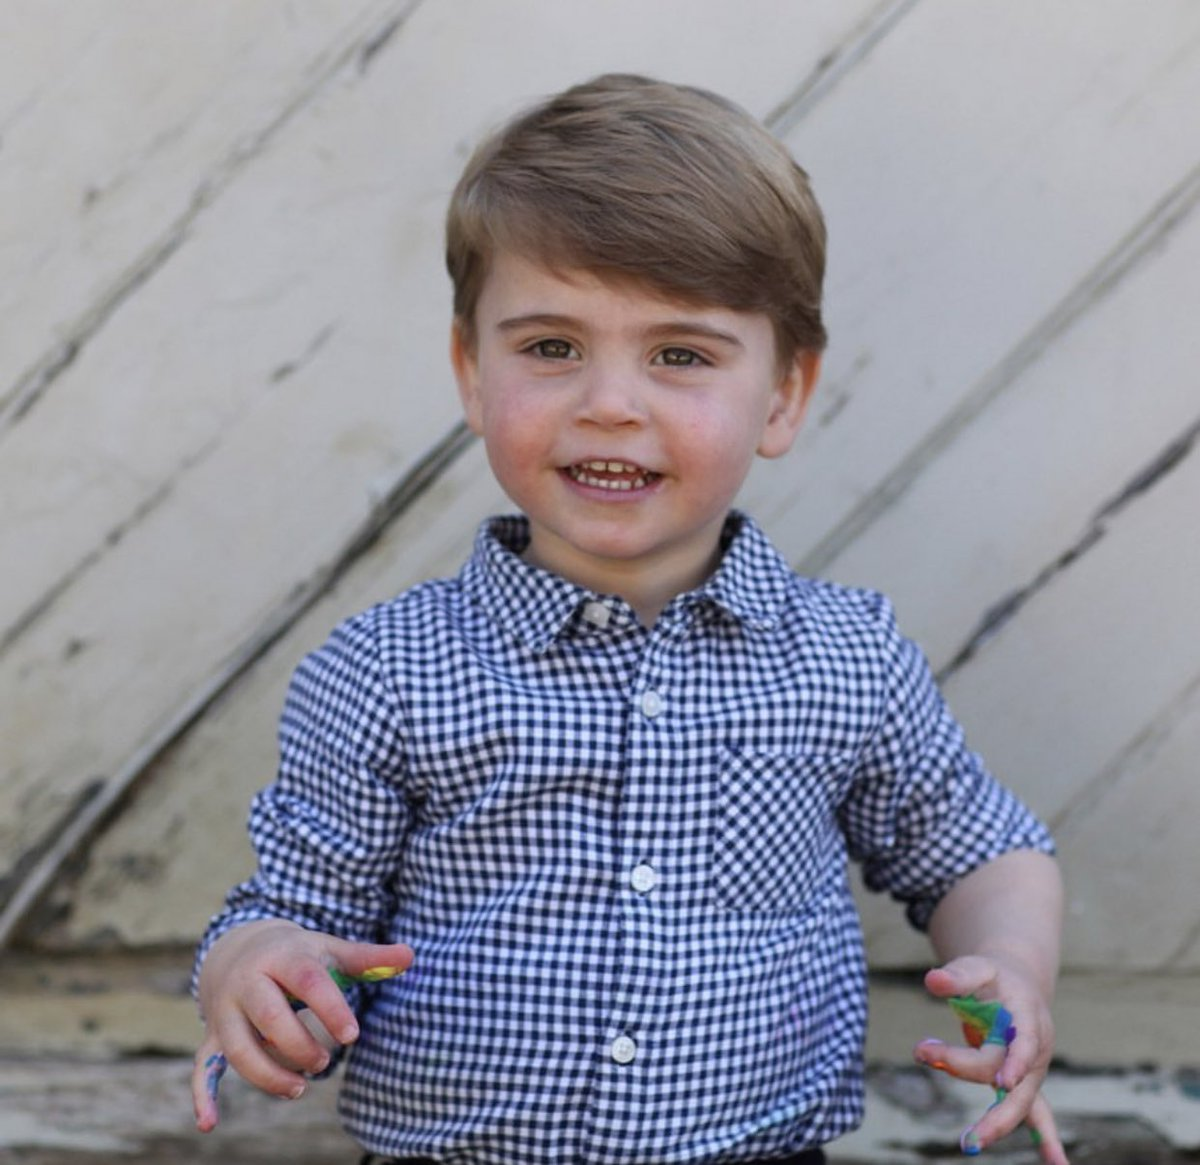 Here's an adorable photo ahead of Prince Louis second birthday, tomorrow. ❤️